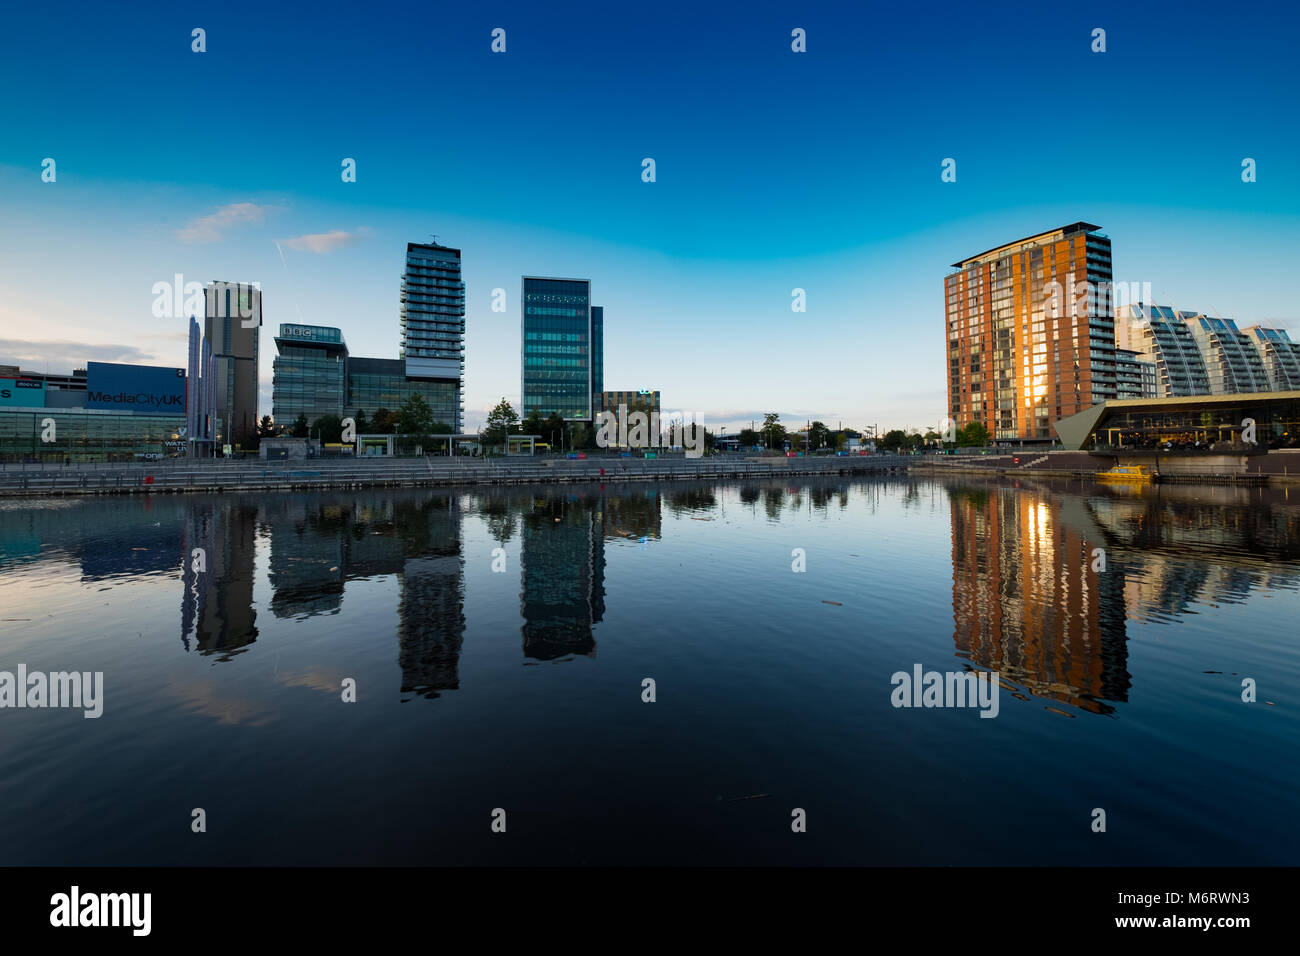 Salford Quays Media City, Manchester - Stock Image